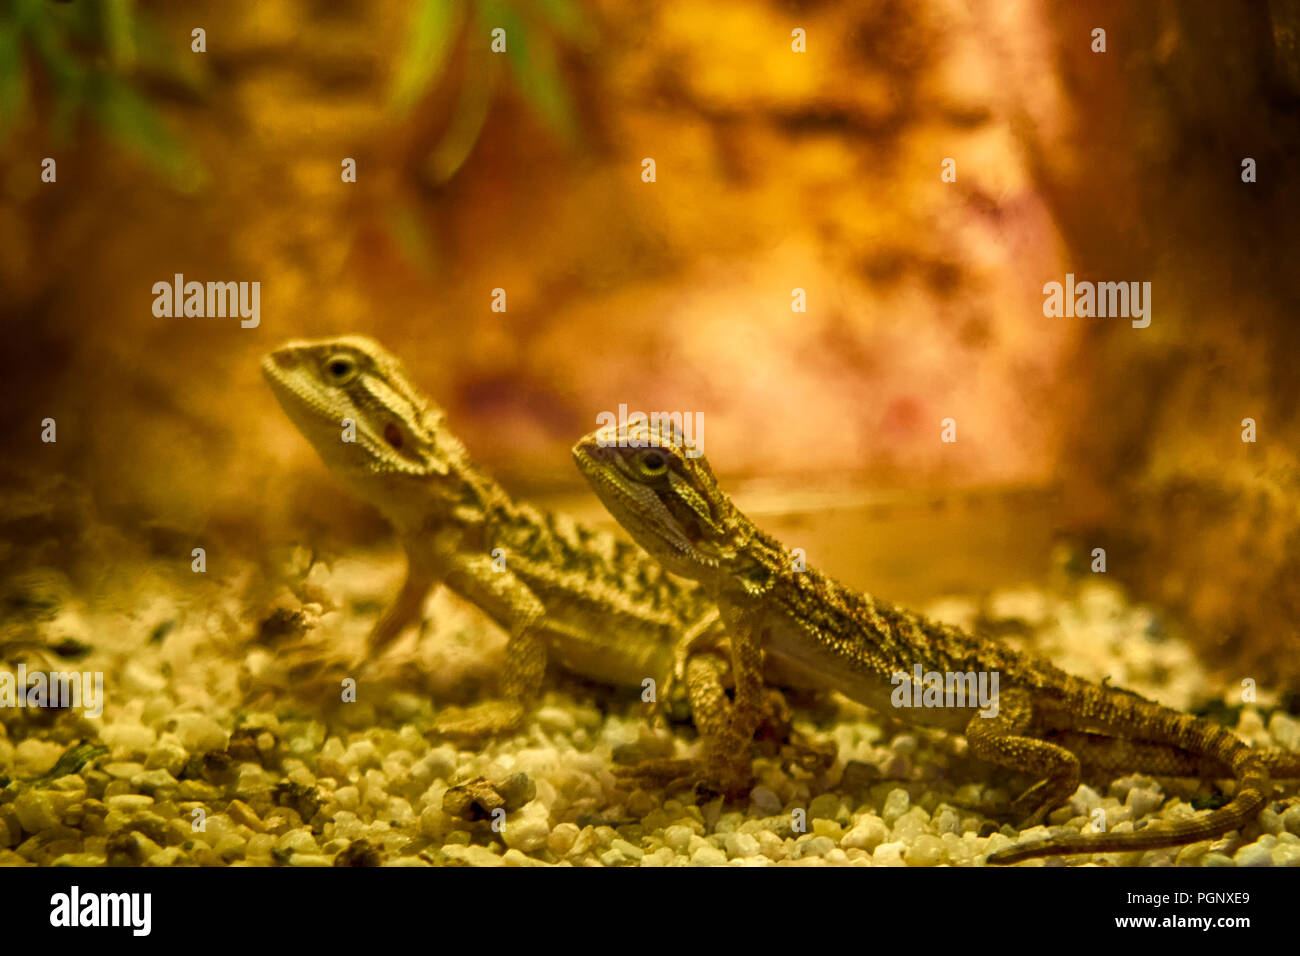 Bearded dragon close up, shallow dof. Pogona is a genus of reptiles containing nine lizard species which are often known by the common name bearded dr Stock Photo